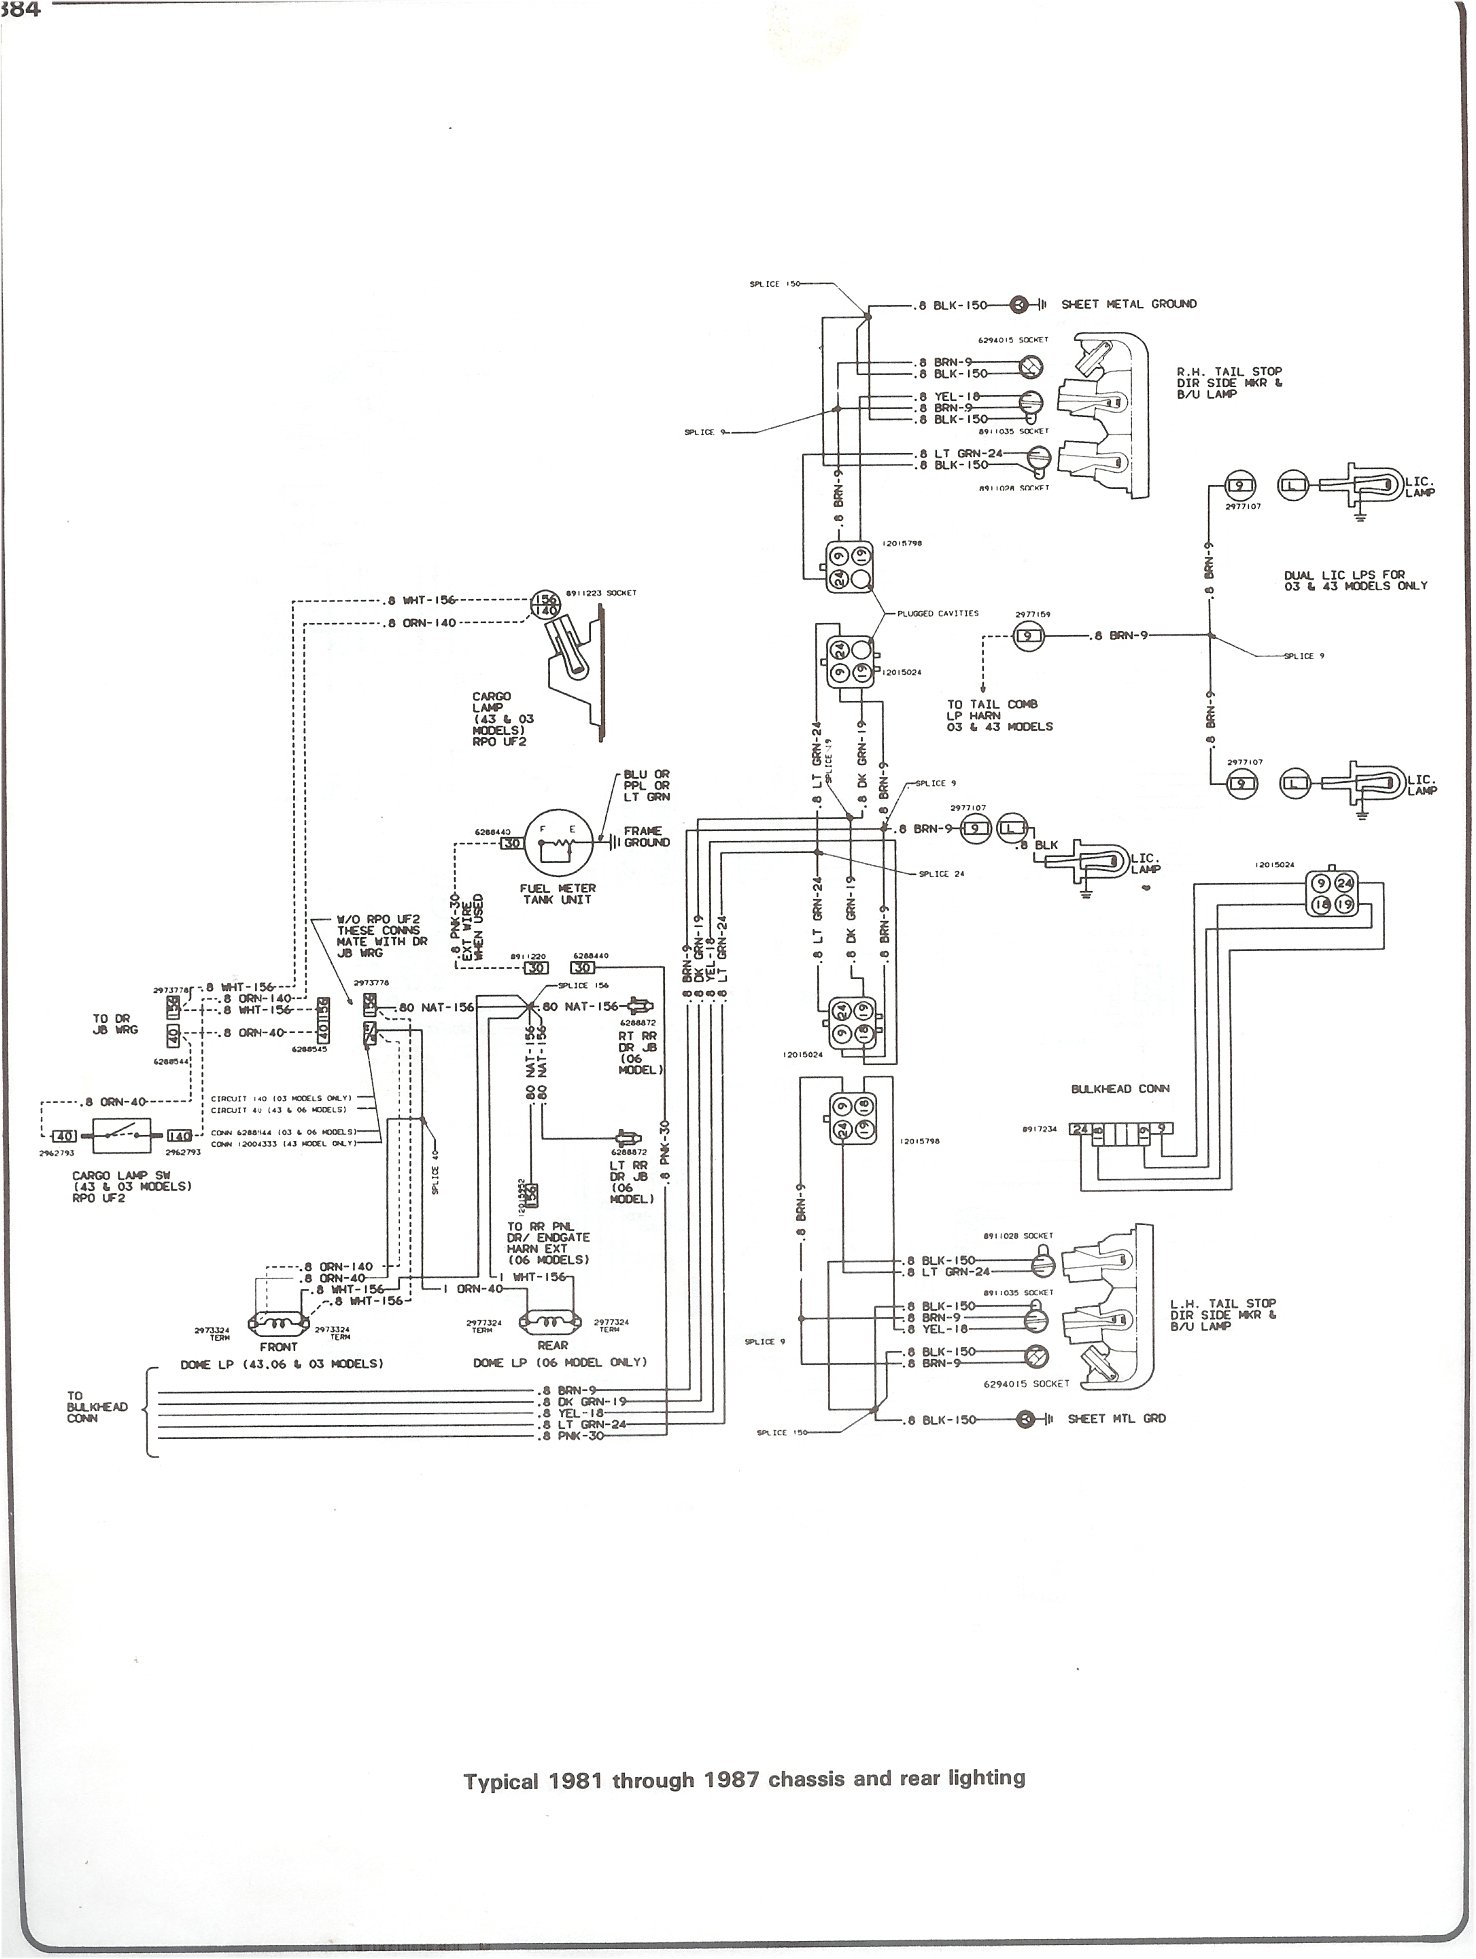 1984 Chevy Truck Wiring Diagram Lighting Find 70 Pickup Complete 73 87 Diagrams Rh Forum 87chevytrucks Com Toyota 86